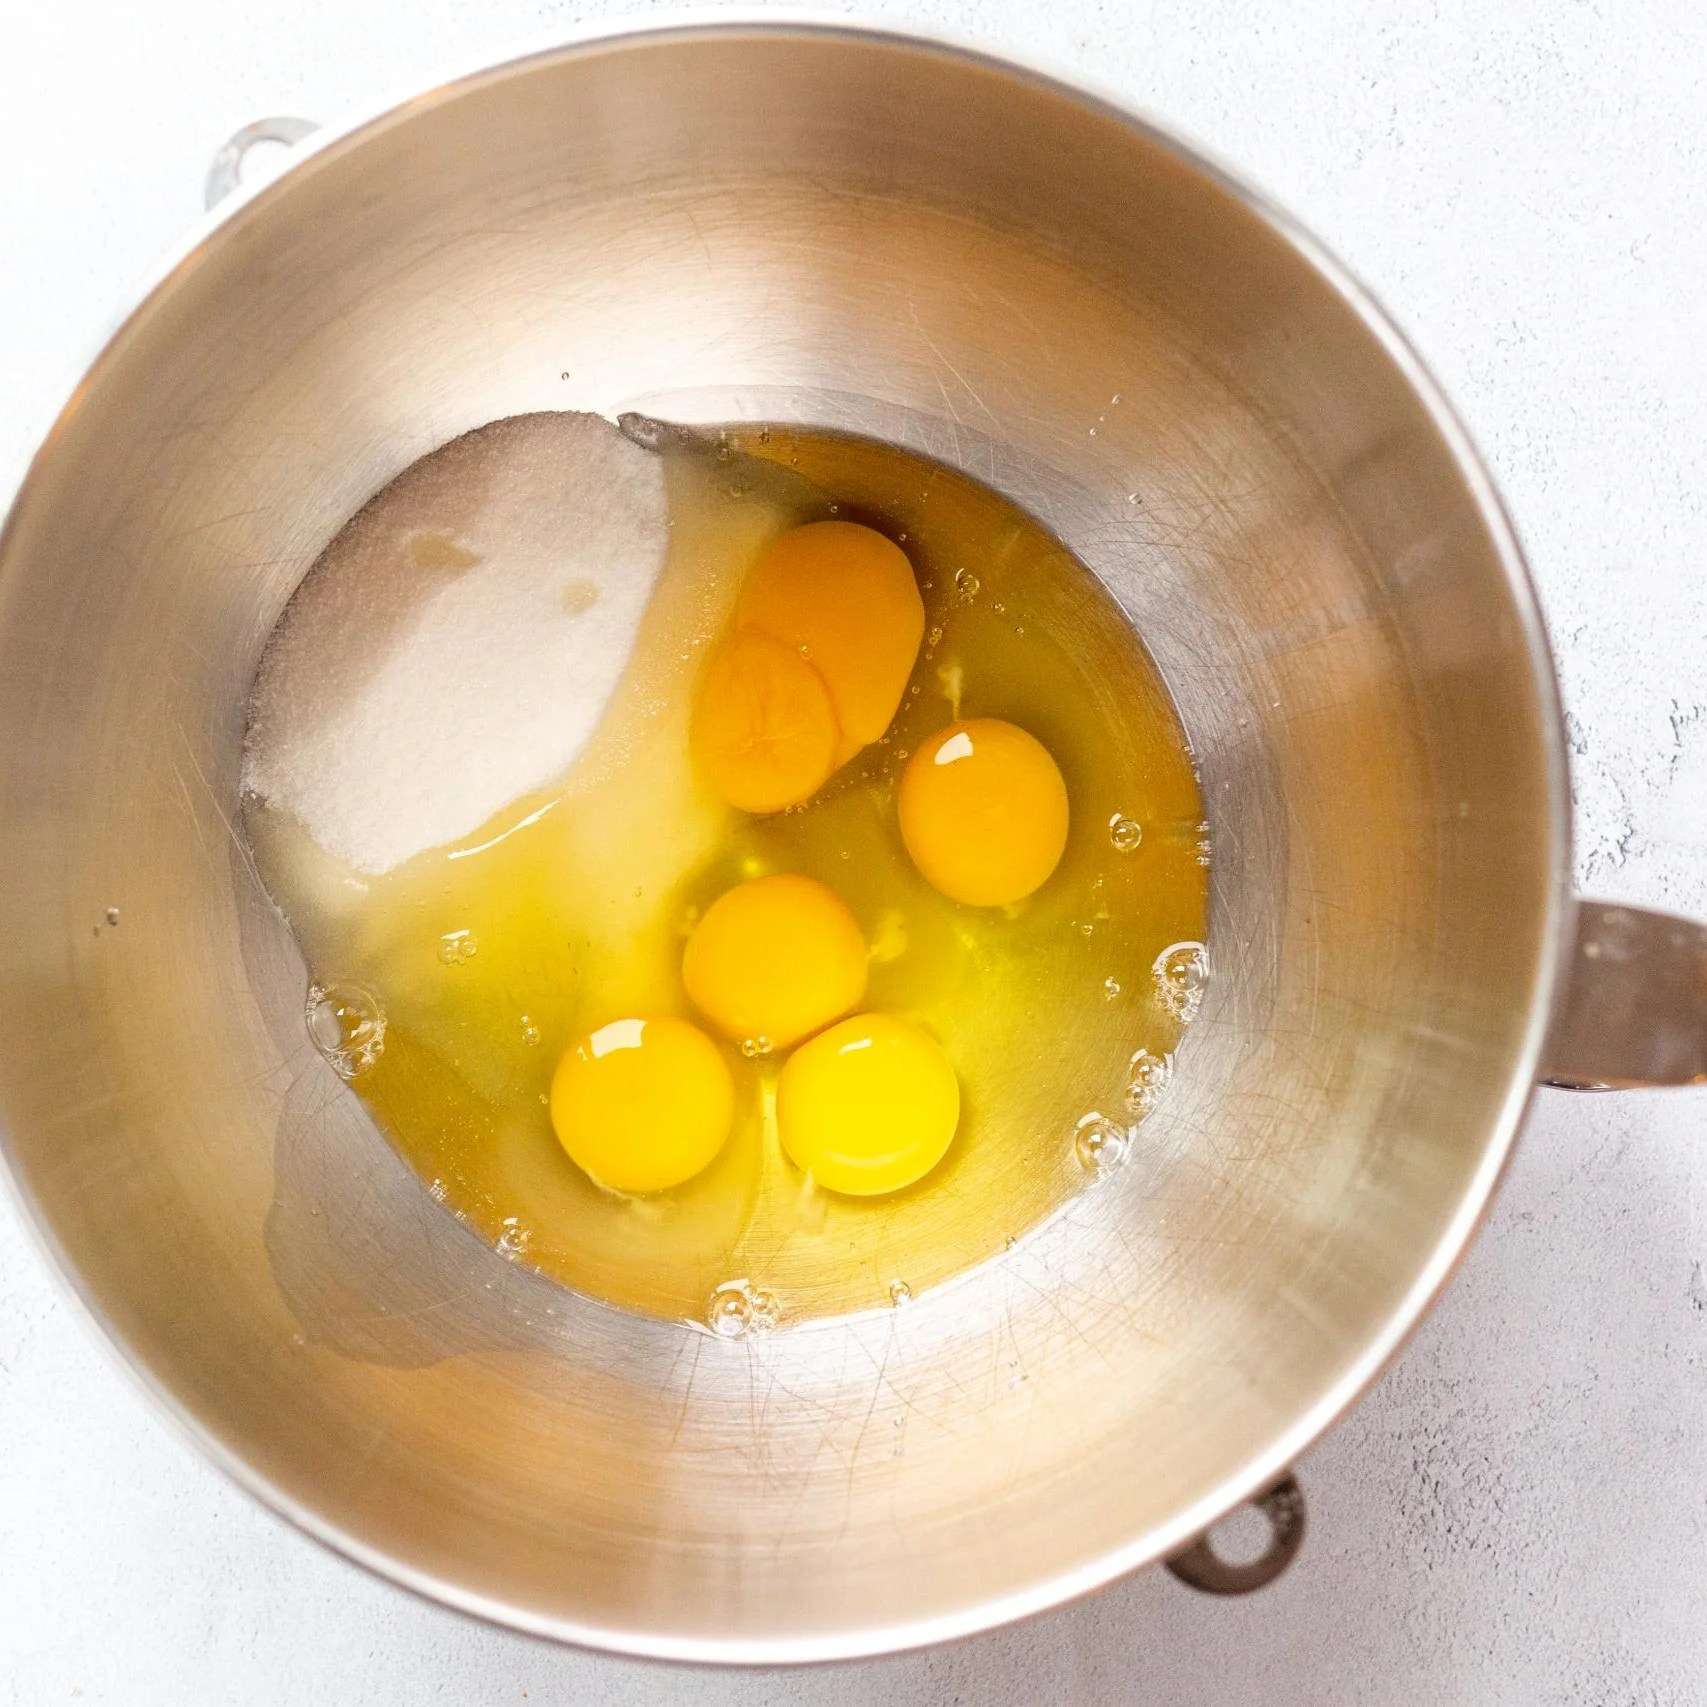 eggs and sugar in a mixing bowl